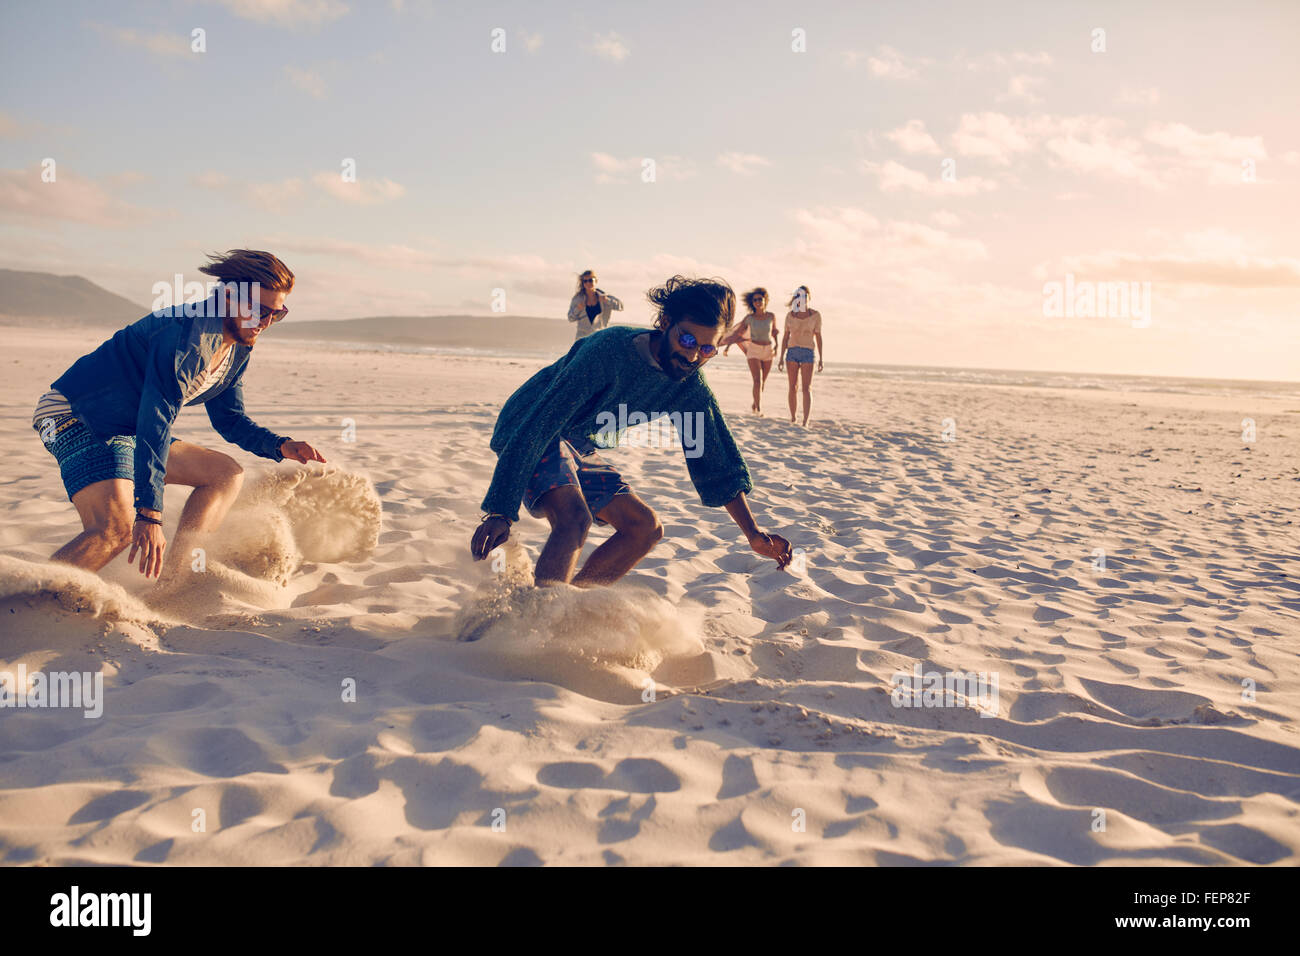 Young men running race on the beach. Group of young people playing games on sandy beach on a summer day. - Stock Image